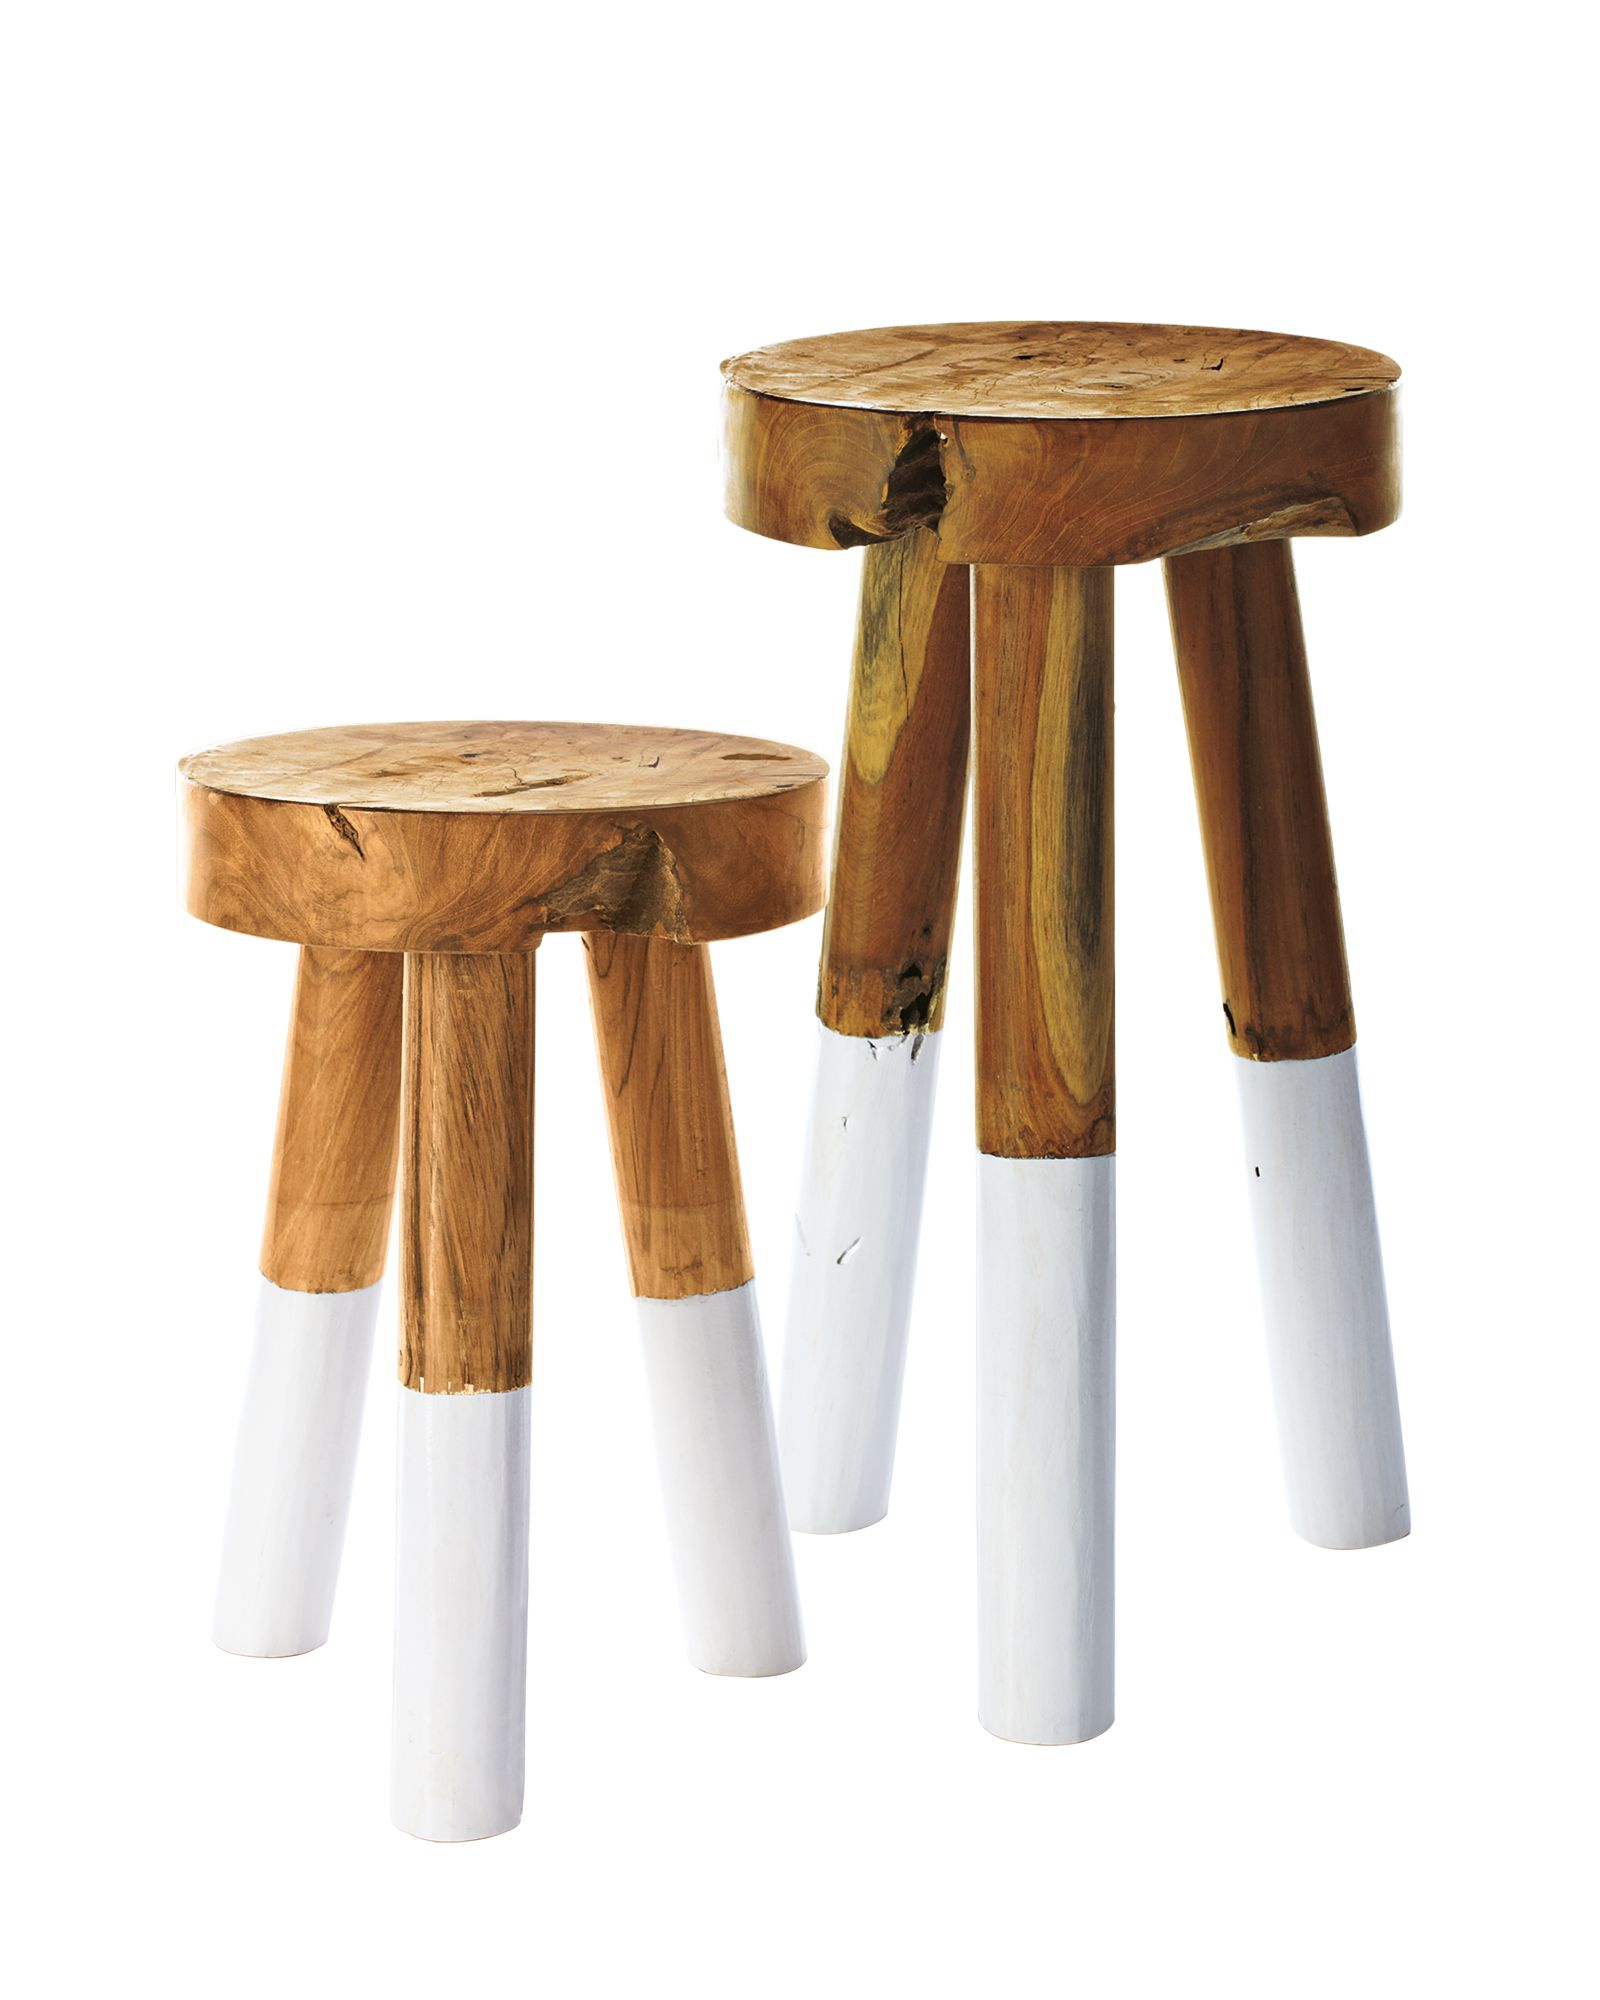 Dip Dyed Stools Dip Dyed Stools Affordable Home Decor Stool